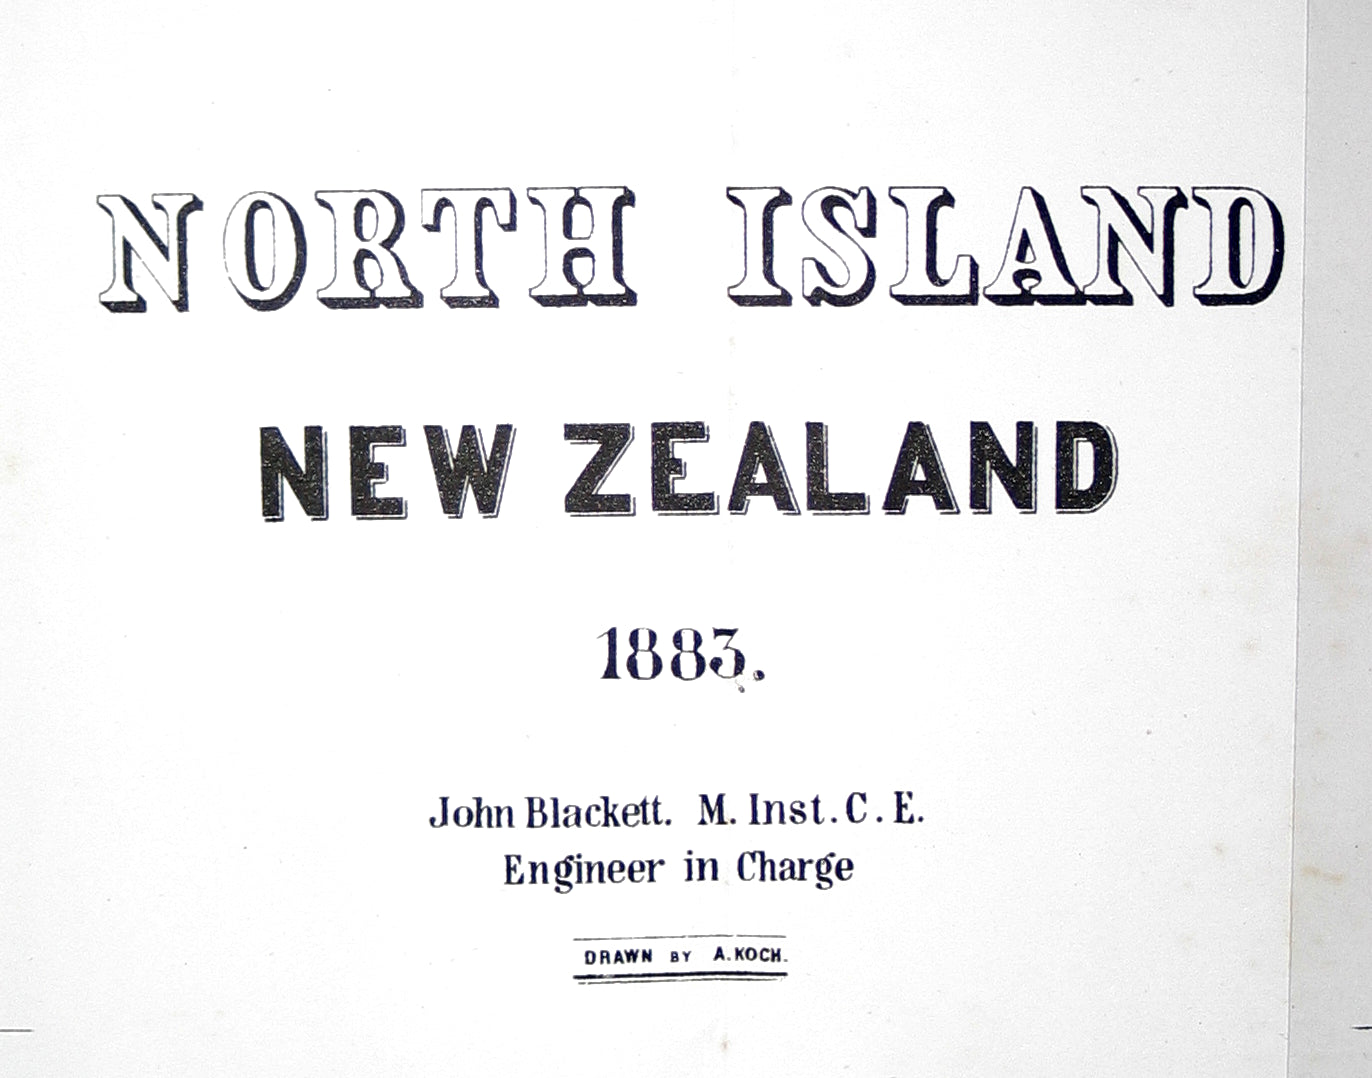 New Zealand railways